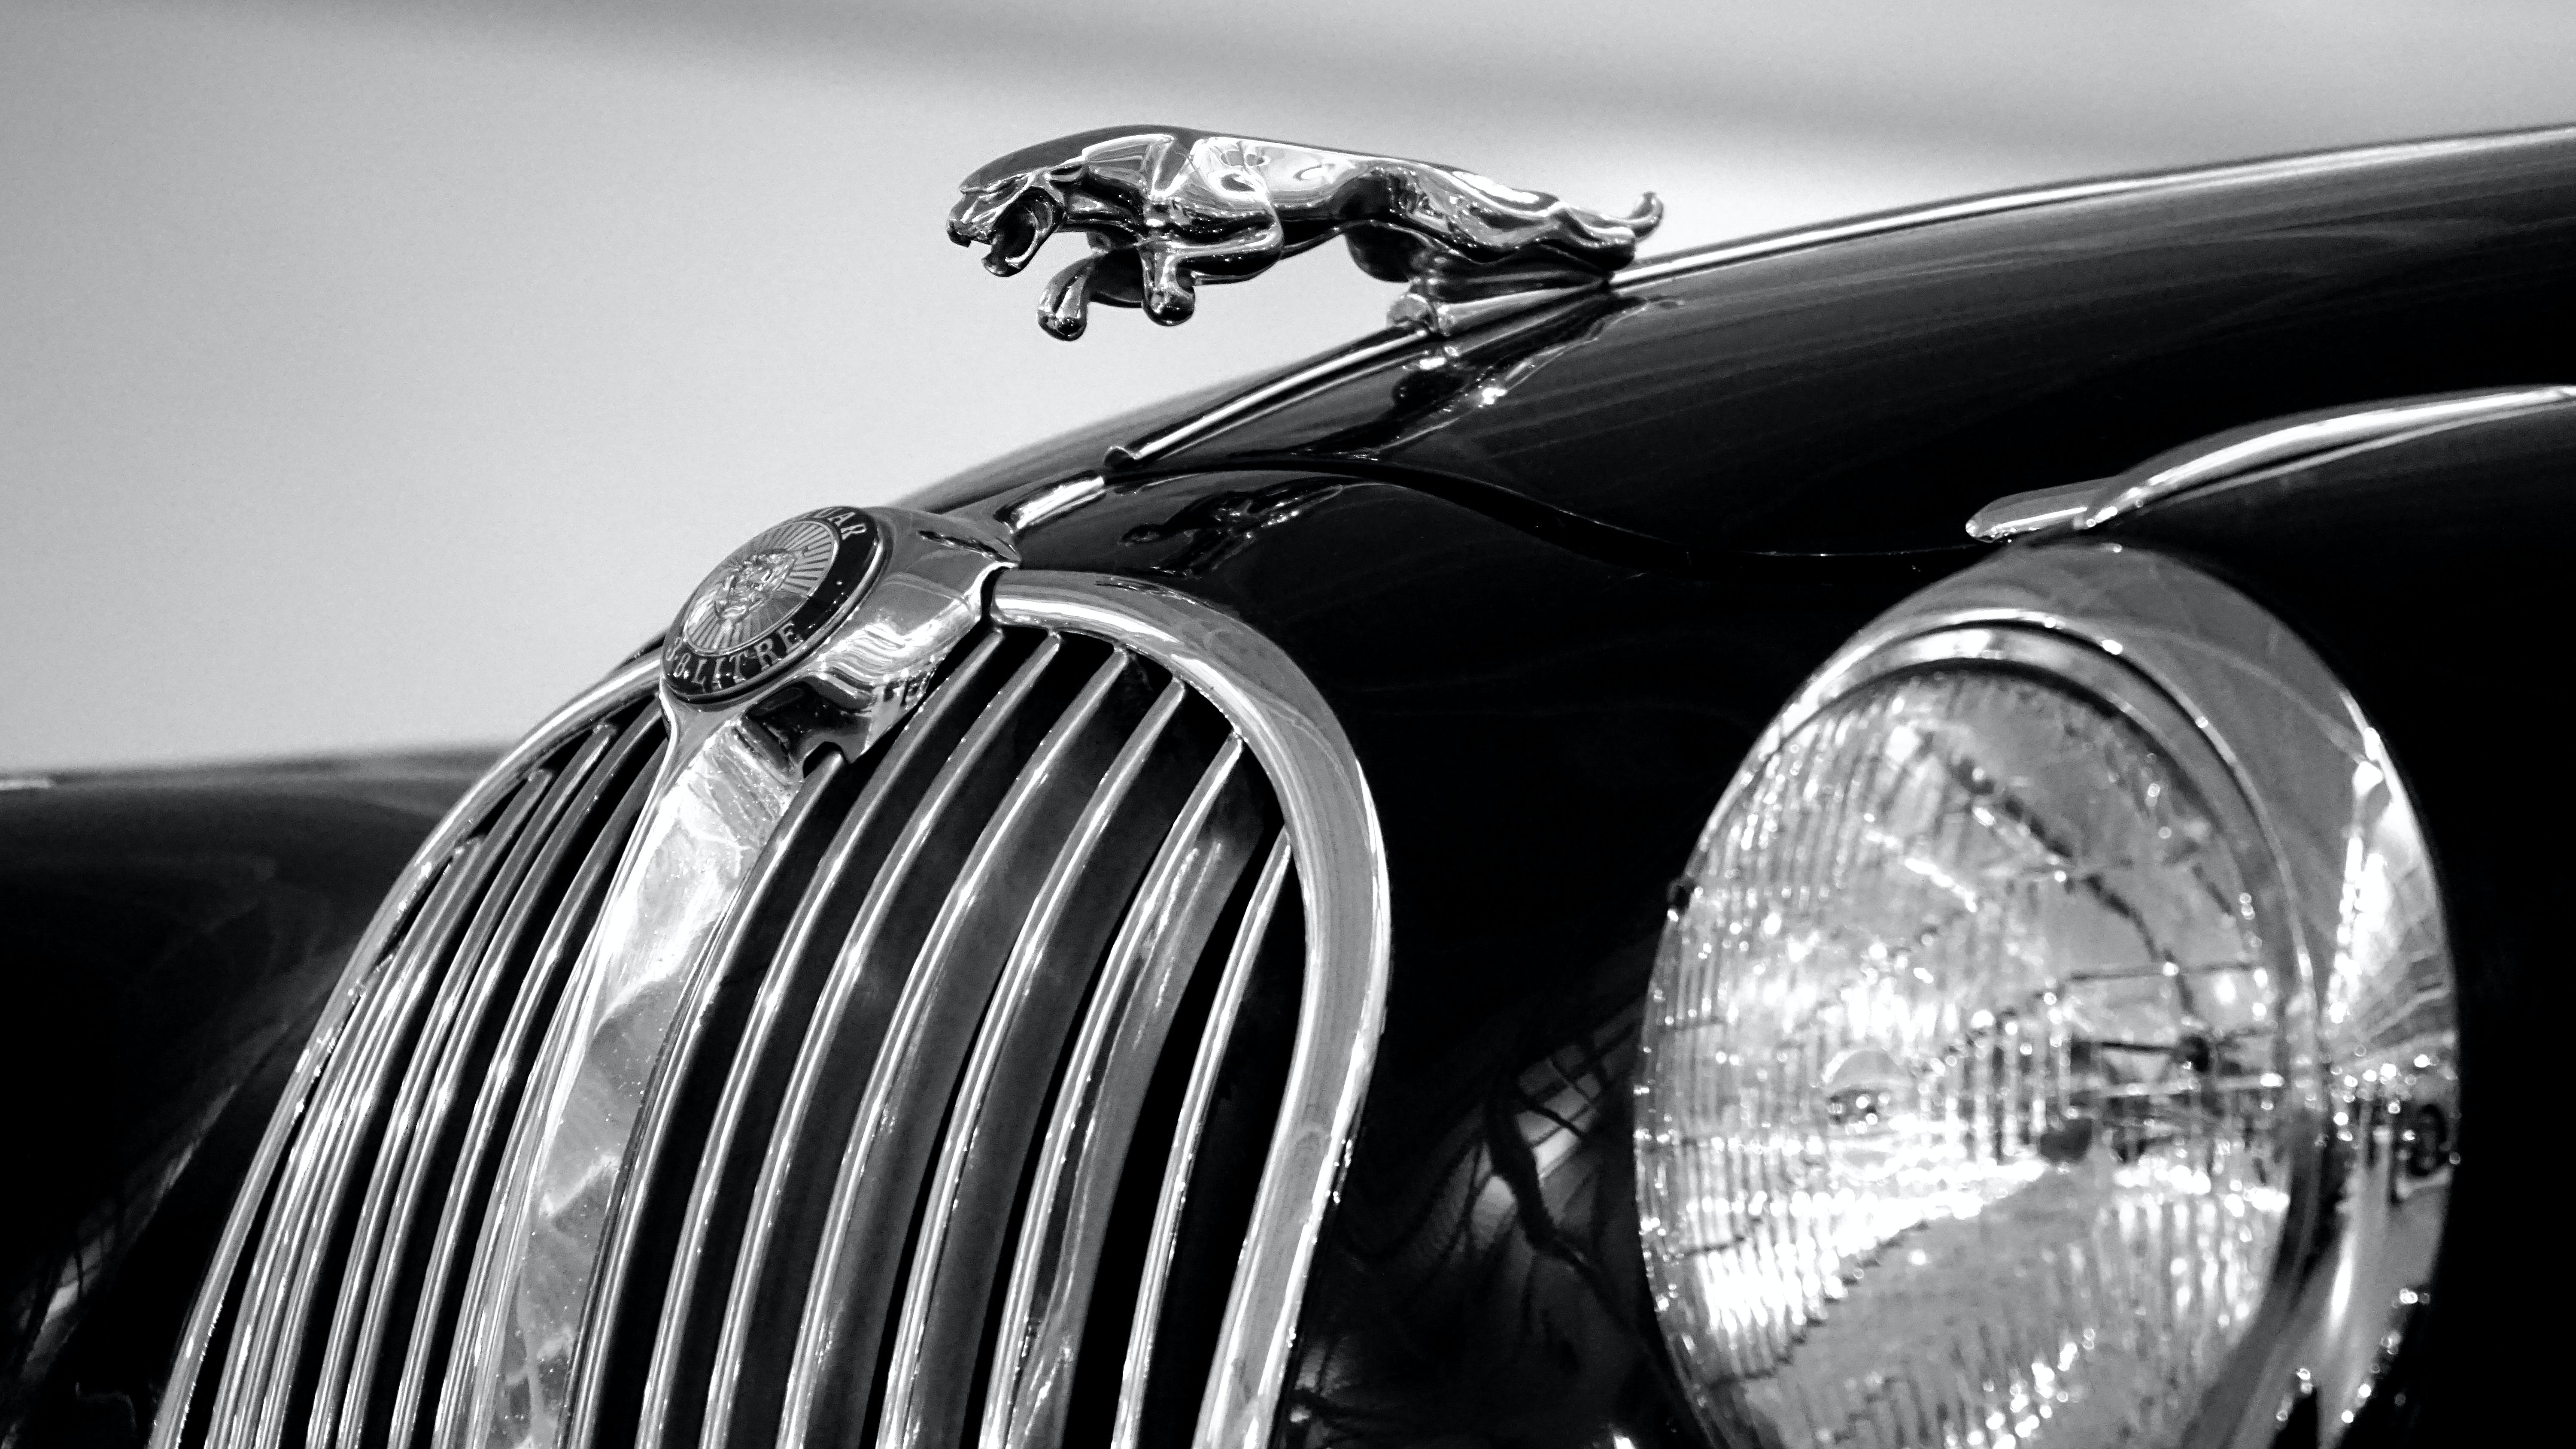 Jaguar Emblem on Black Car